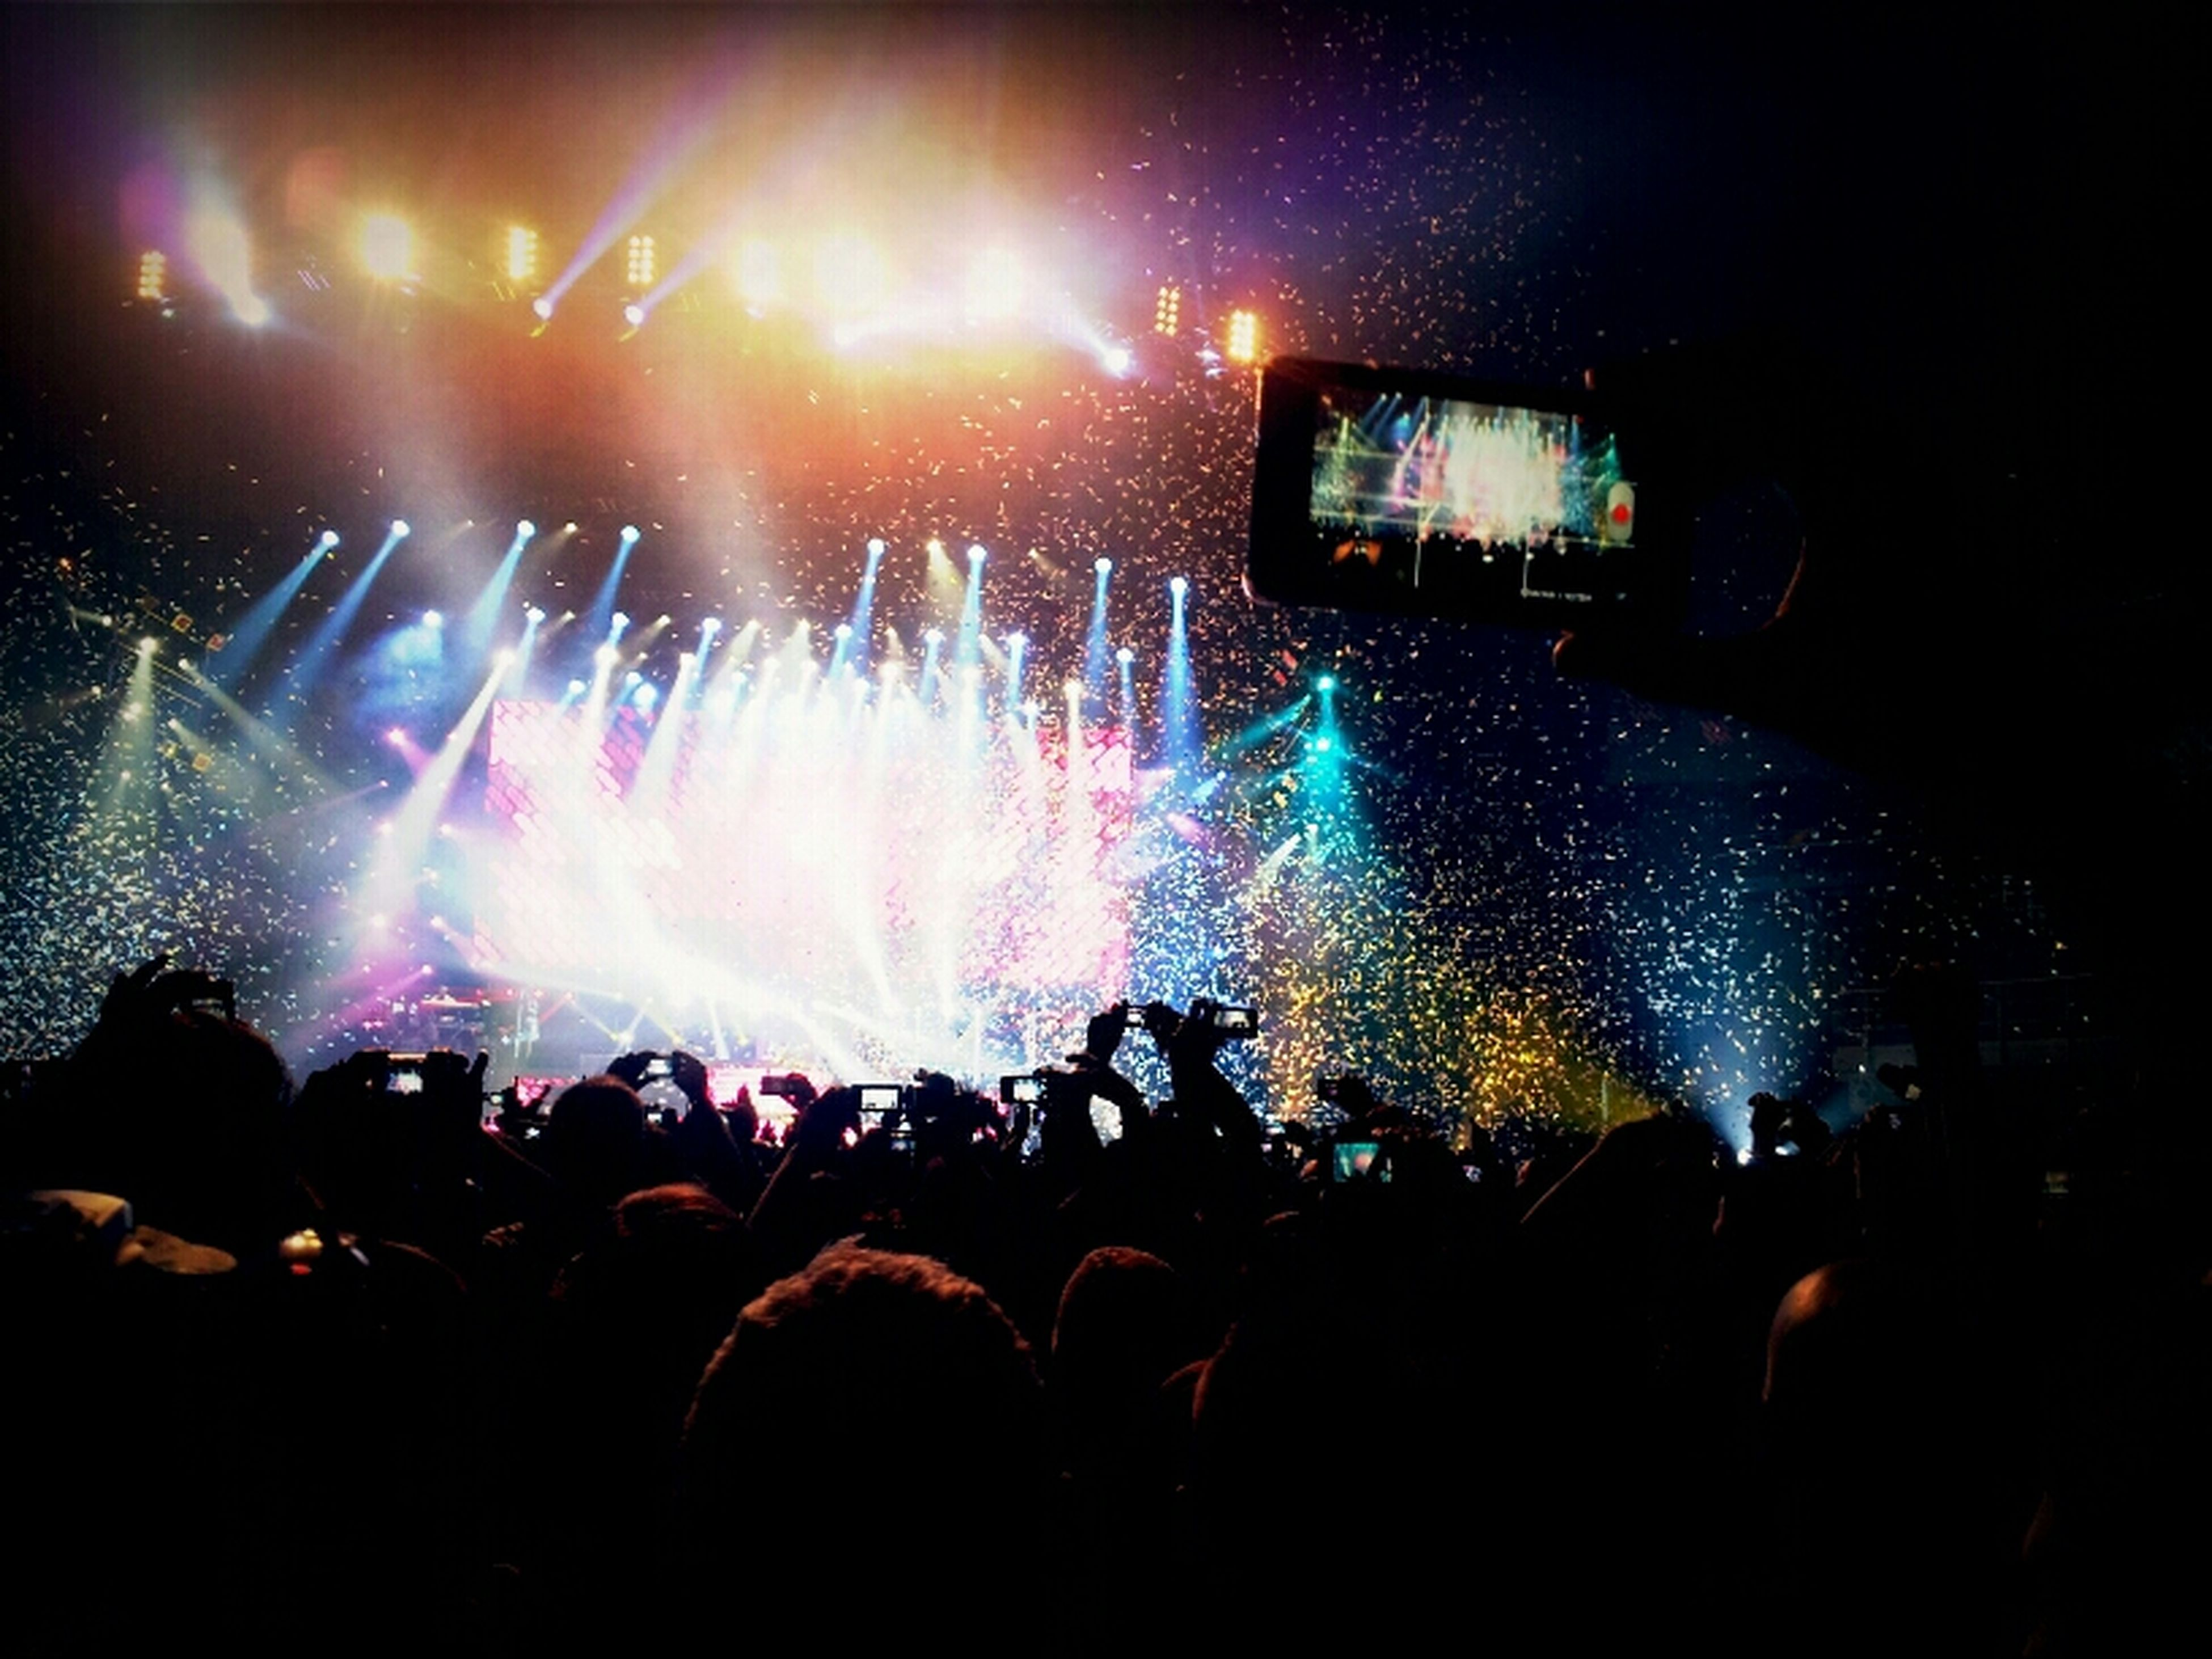 large group of people, arts culture and entertainment, music, crowd, event, person, concert, performance, nightlife, music festival, enjoyment, illuminated, popular music concert, youth culture, fun, stage - performance space, men, stage light, excitement